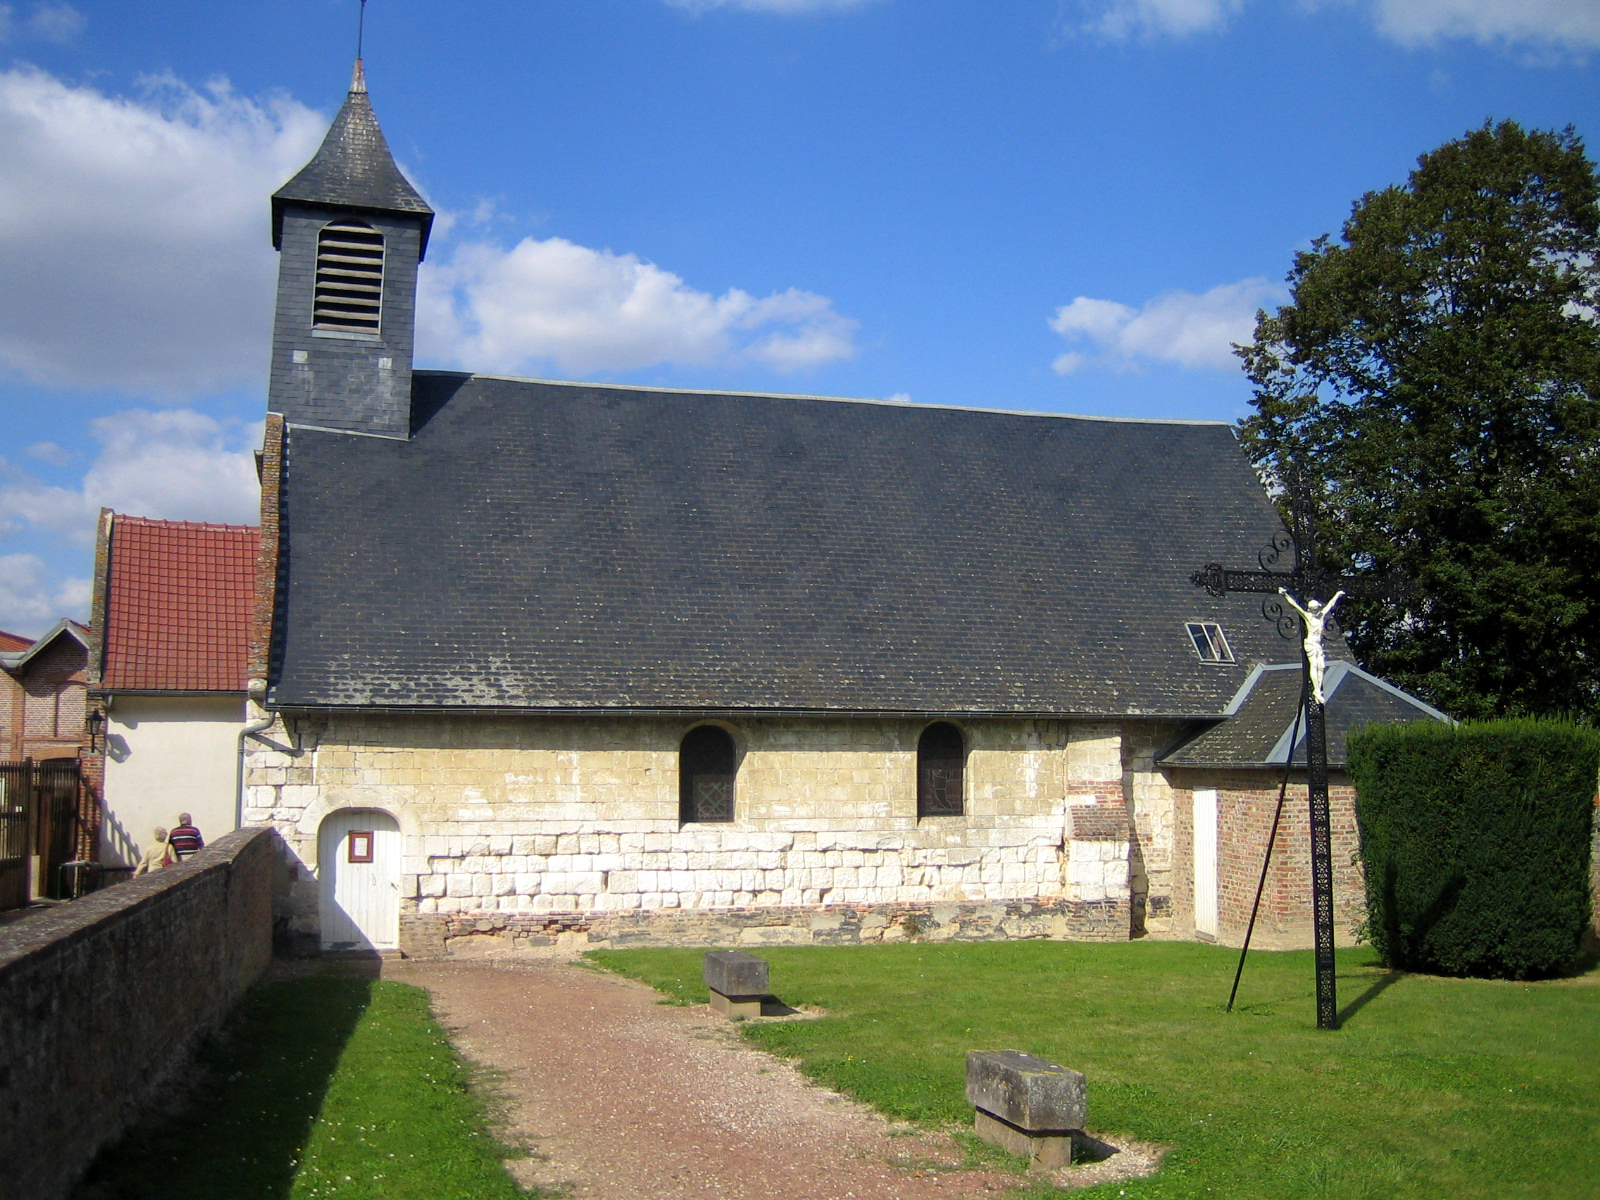 Creuse (Somme)